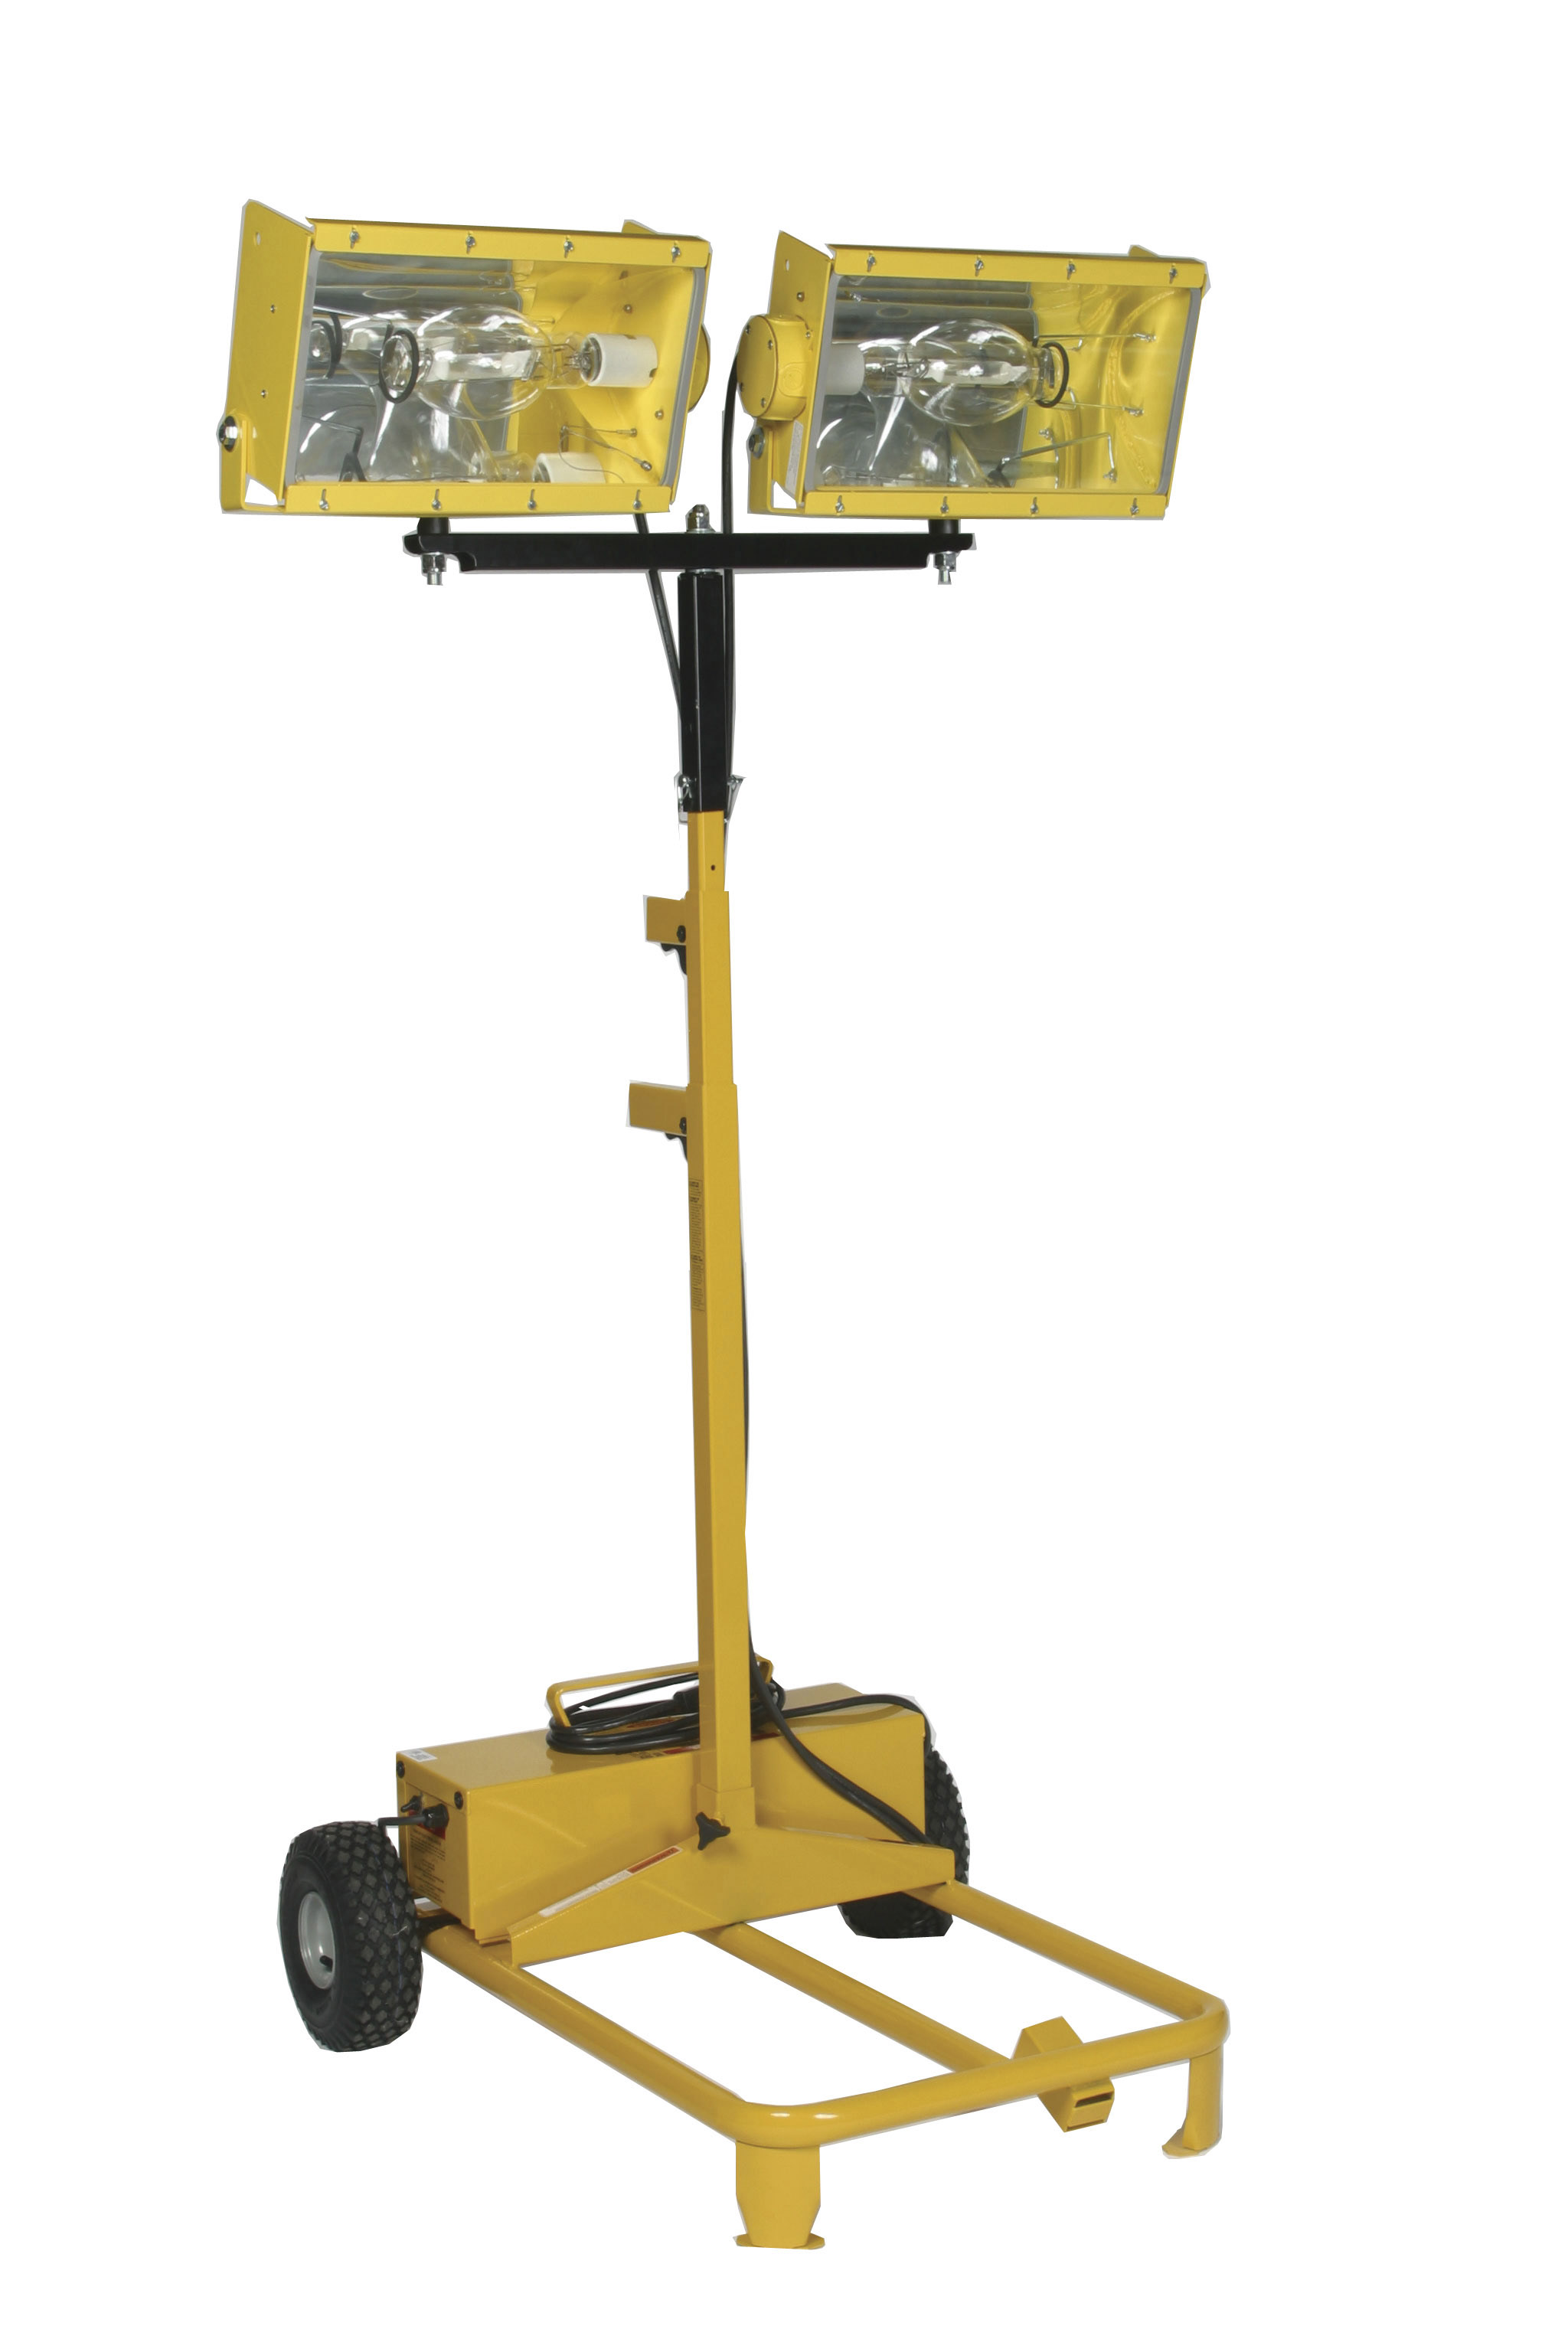 Bull Dog Power Products dual-headed light tower